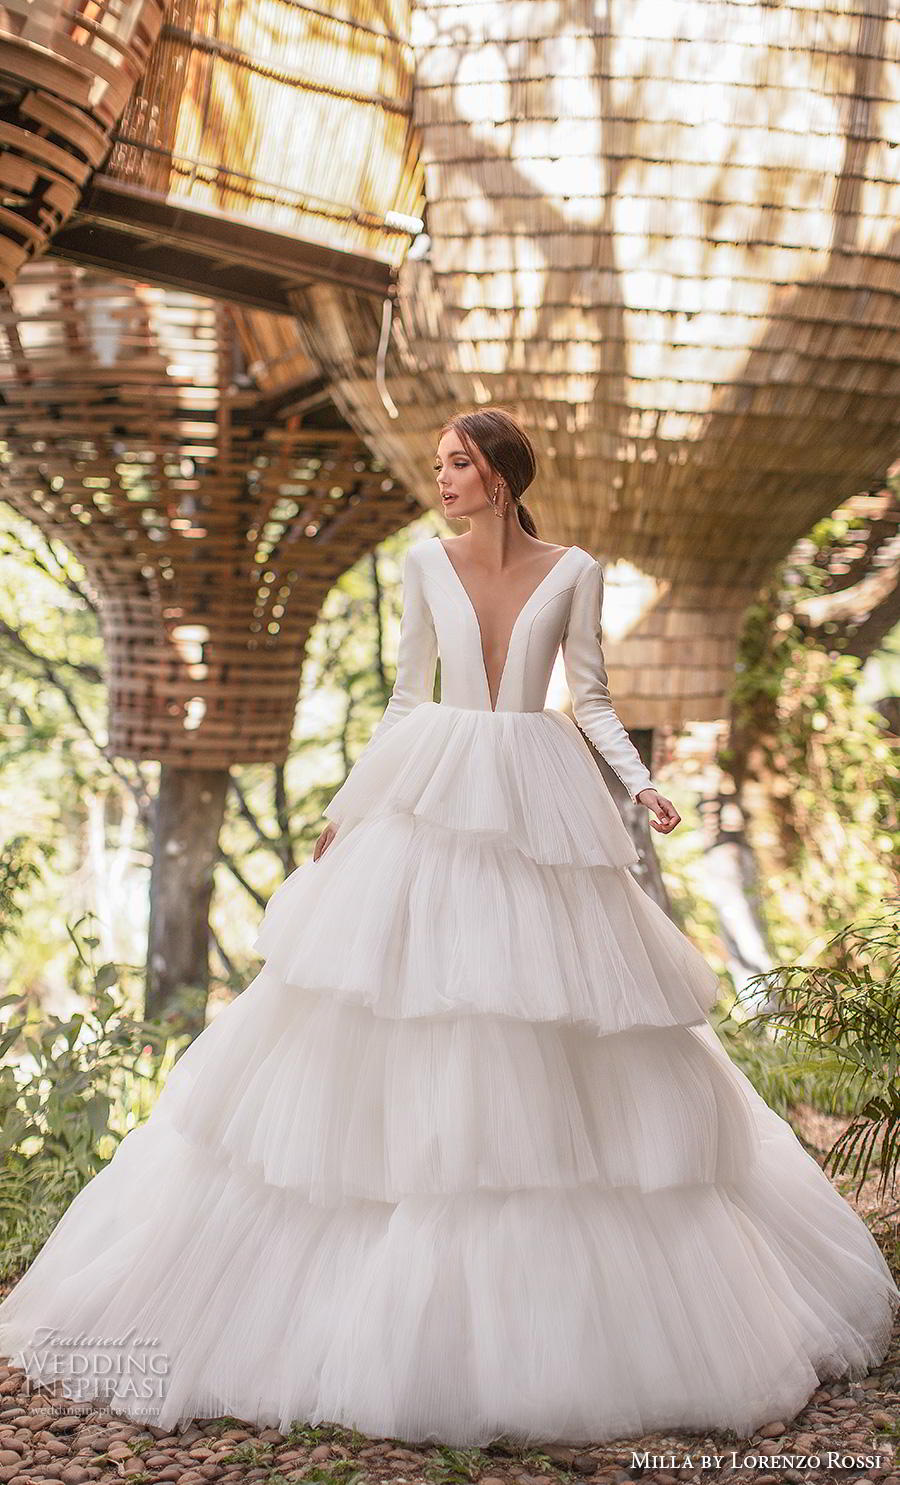 lorenzo rossi 2019 milla bridal long sleeves deep plunging v neck simple elegant minimalist tiered skirt ball gown a  line wedding dress sheer button back royal train (1) mv